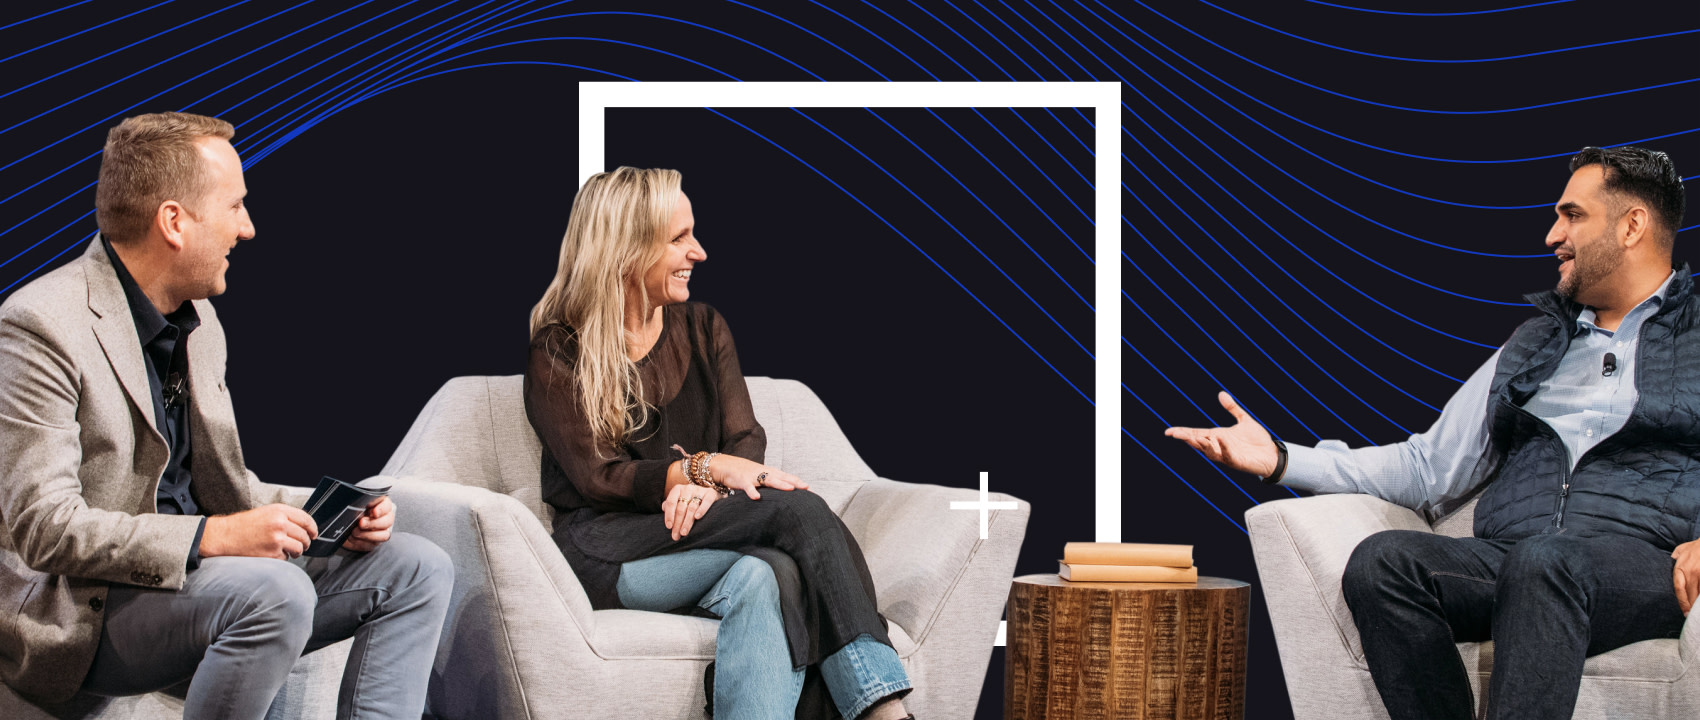 Sustainability and Innovation talk with Allbirds, Mara Hoffman and Ford X